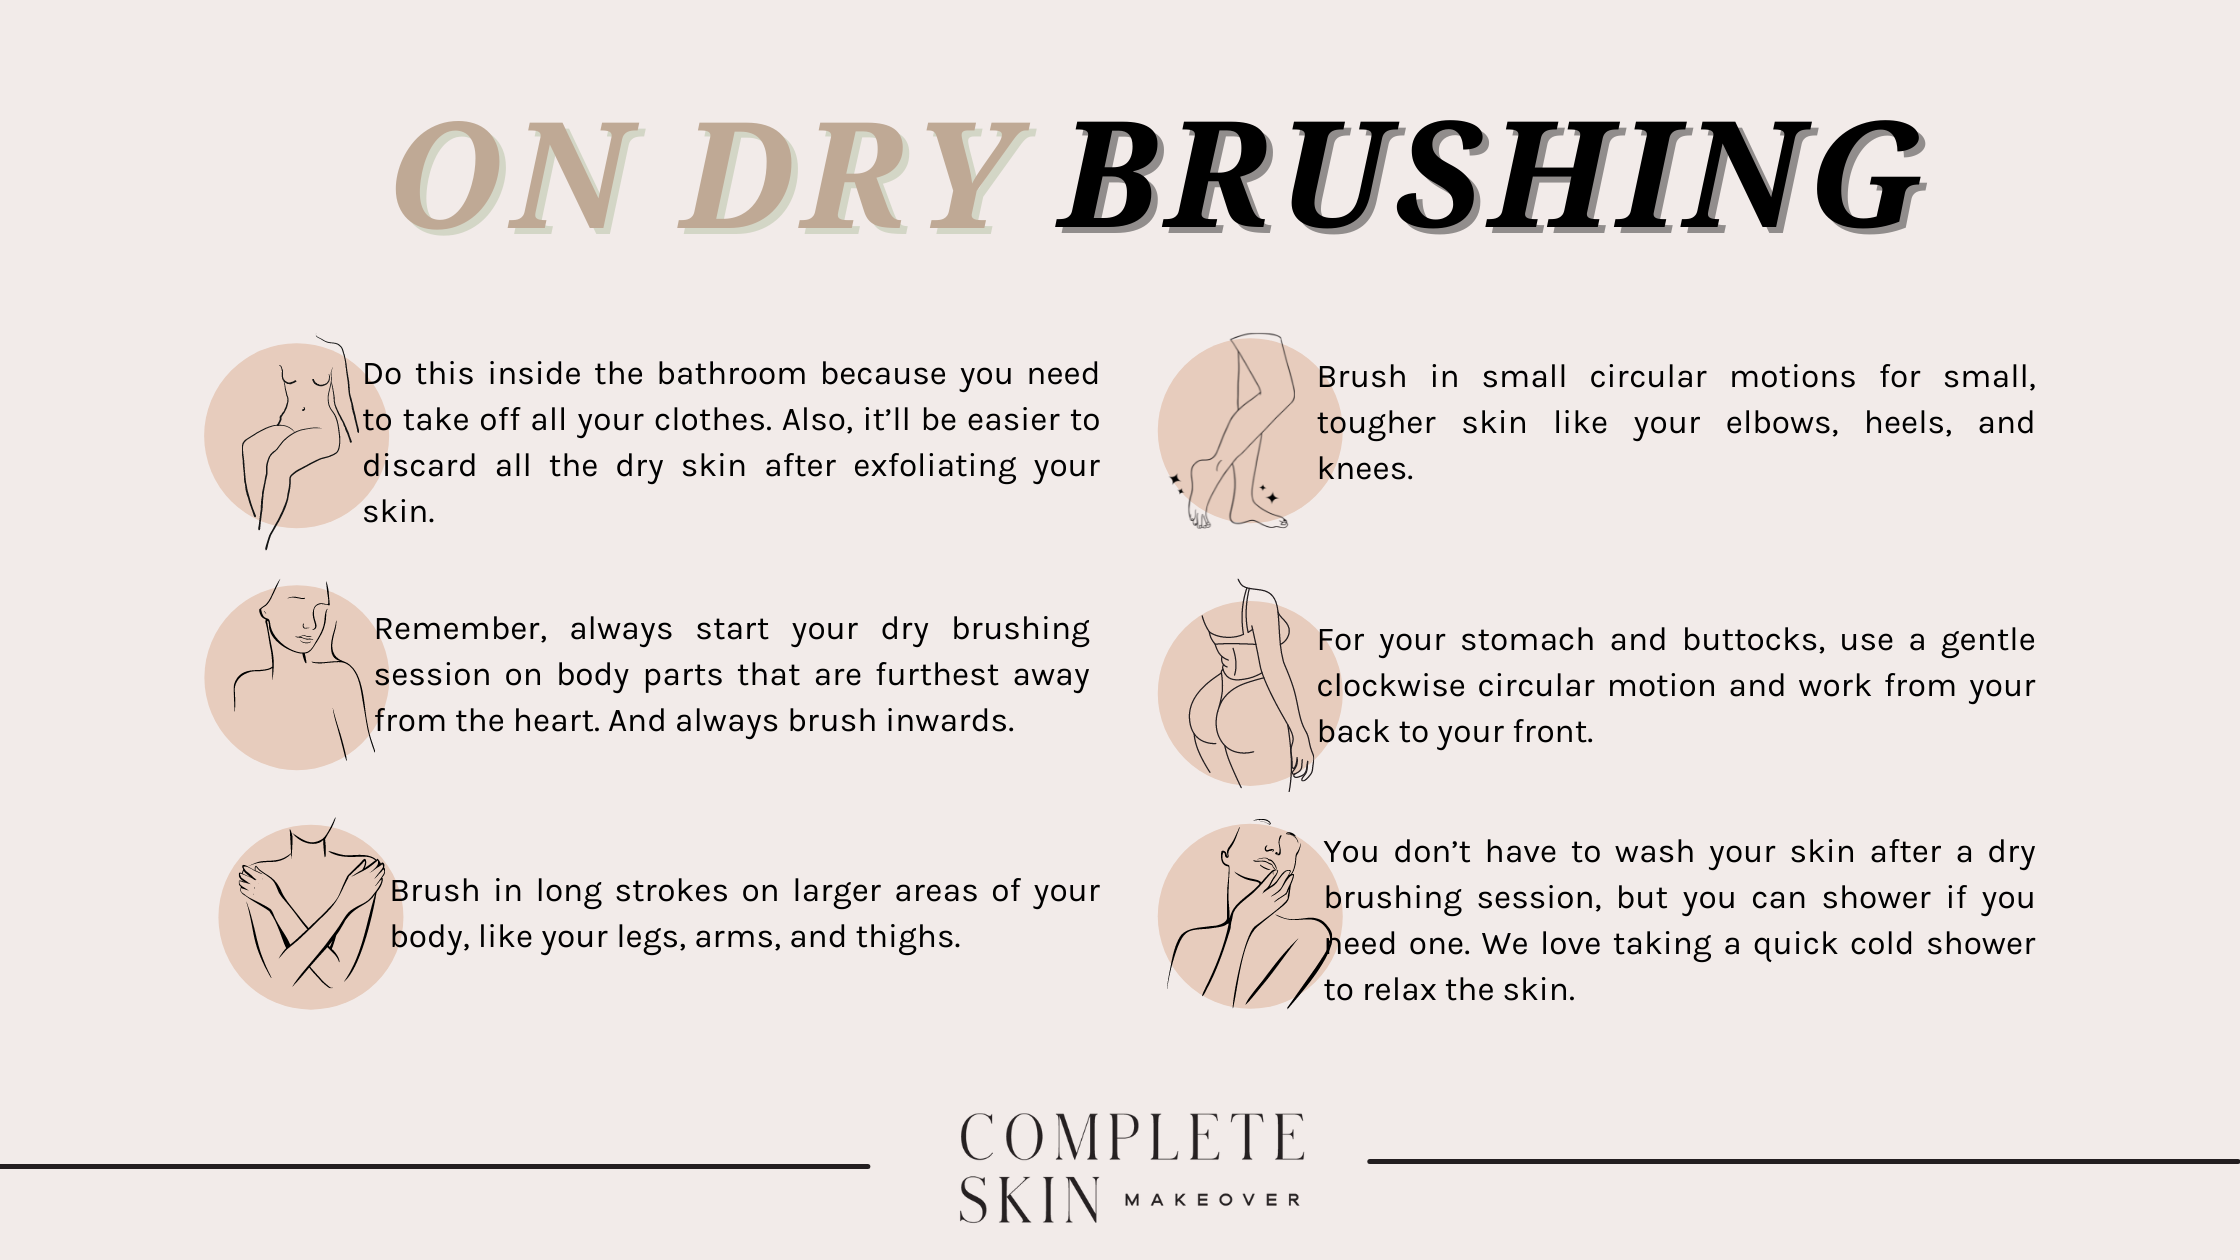 How to dry brush your skin.